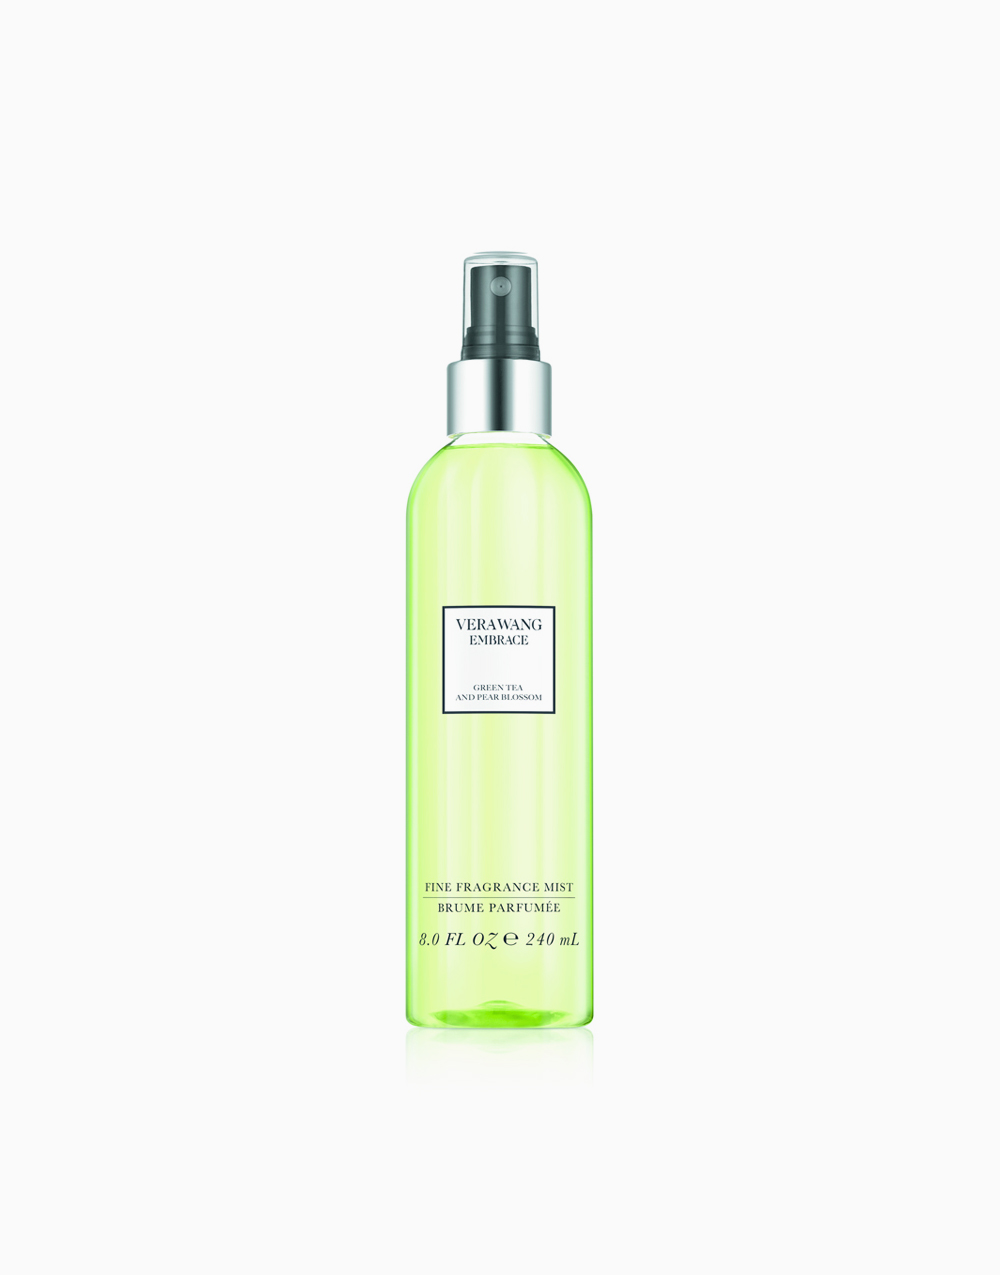 Vera Wang Embrace Green Tea and Pear Blossom Body Mist (8oz) by Vera Wang